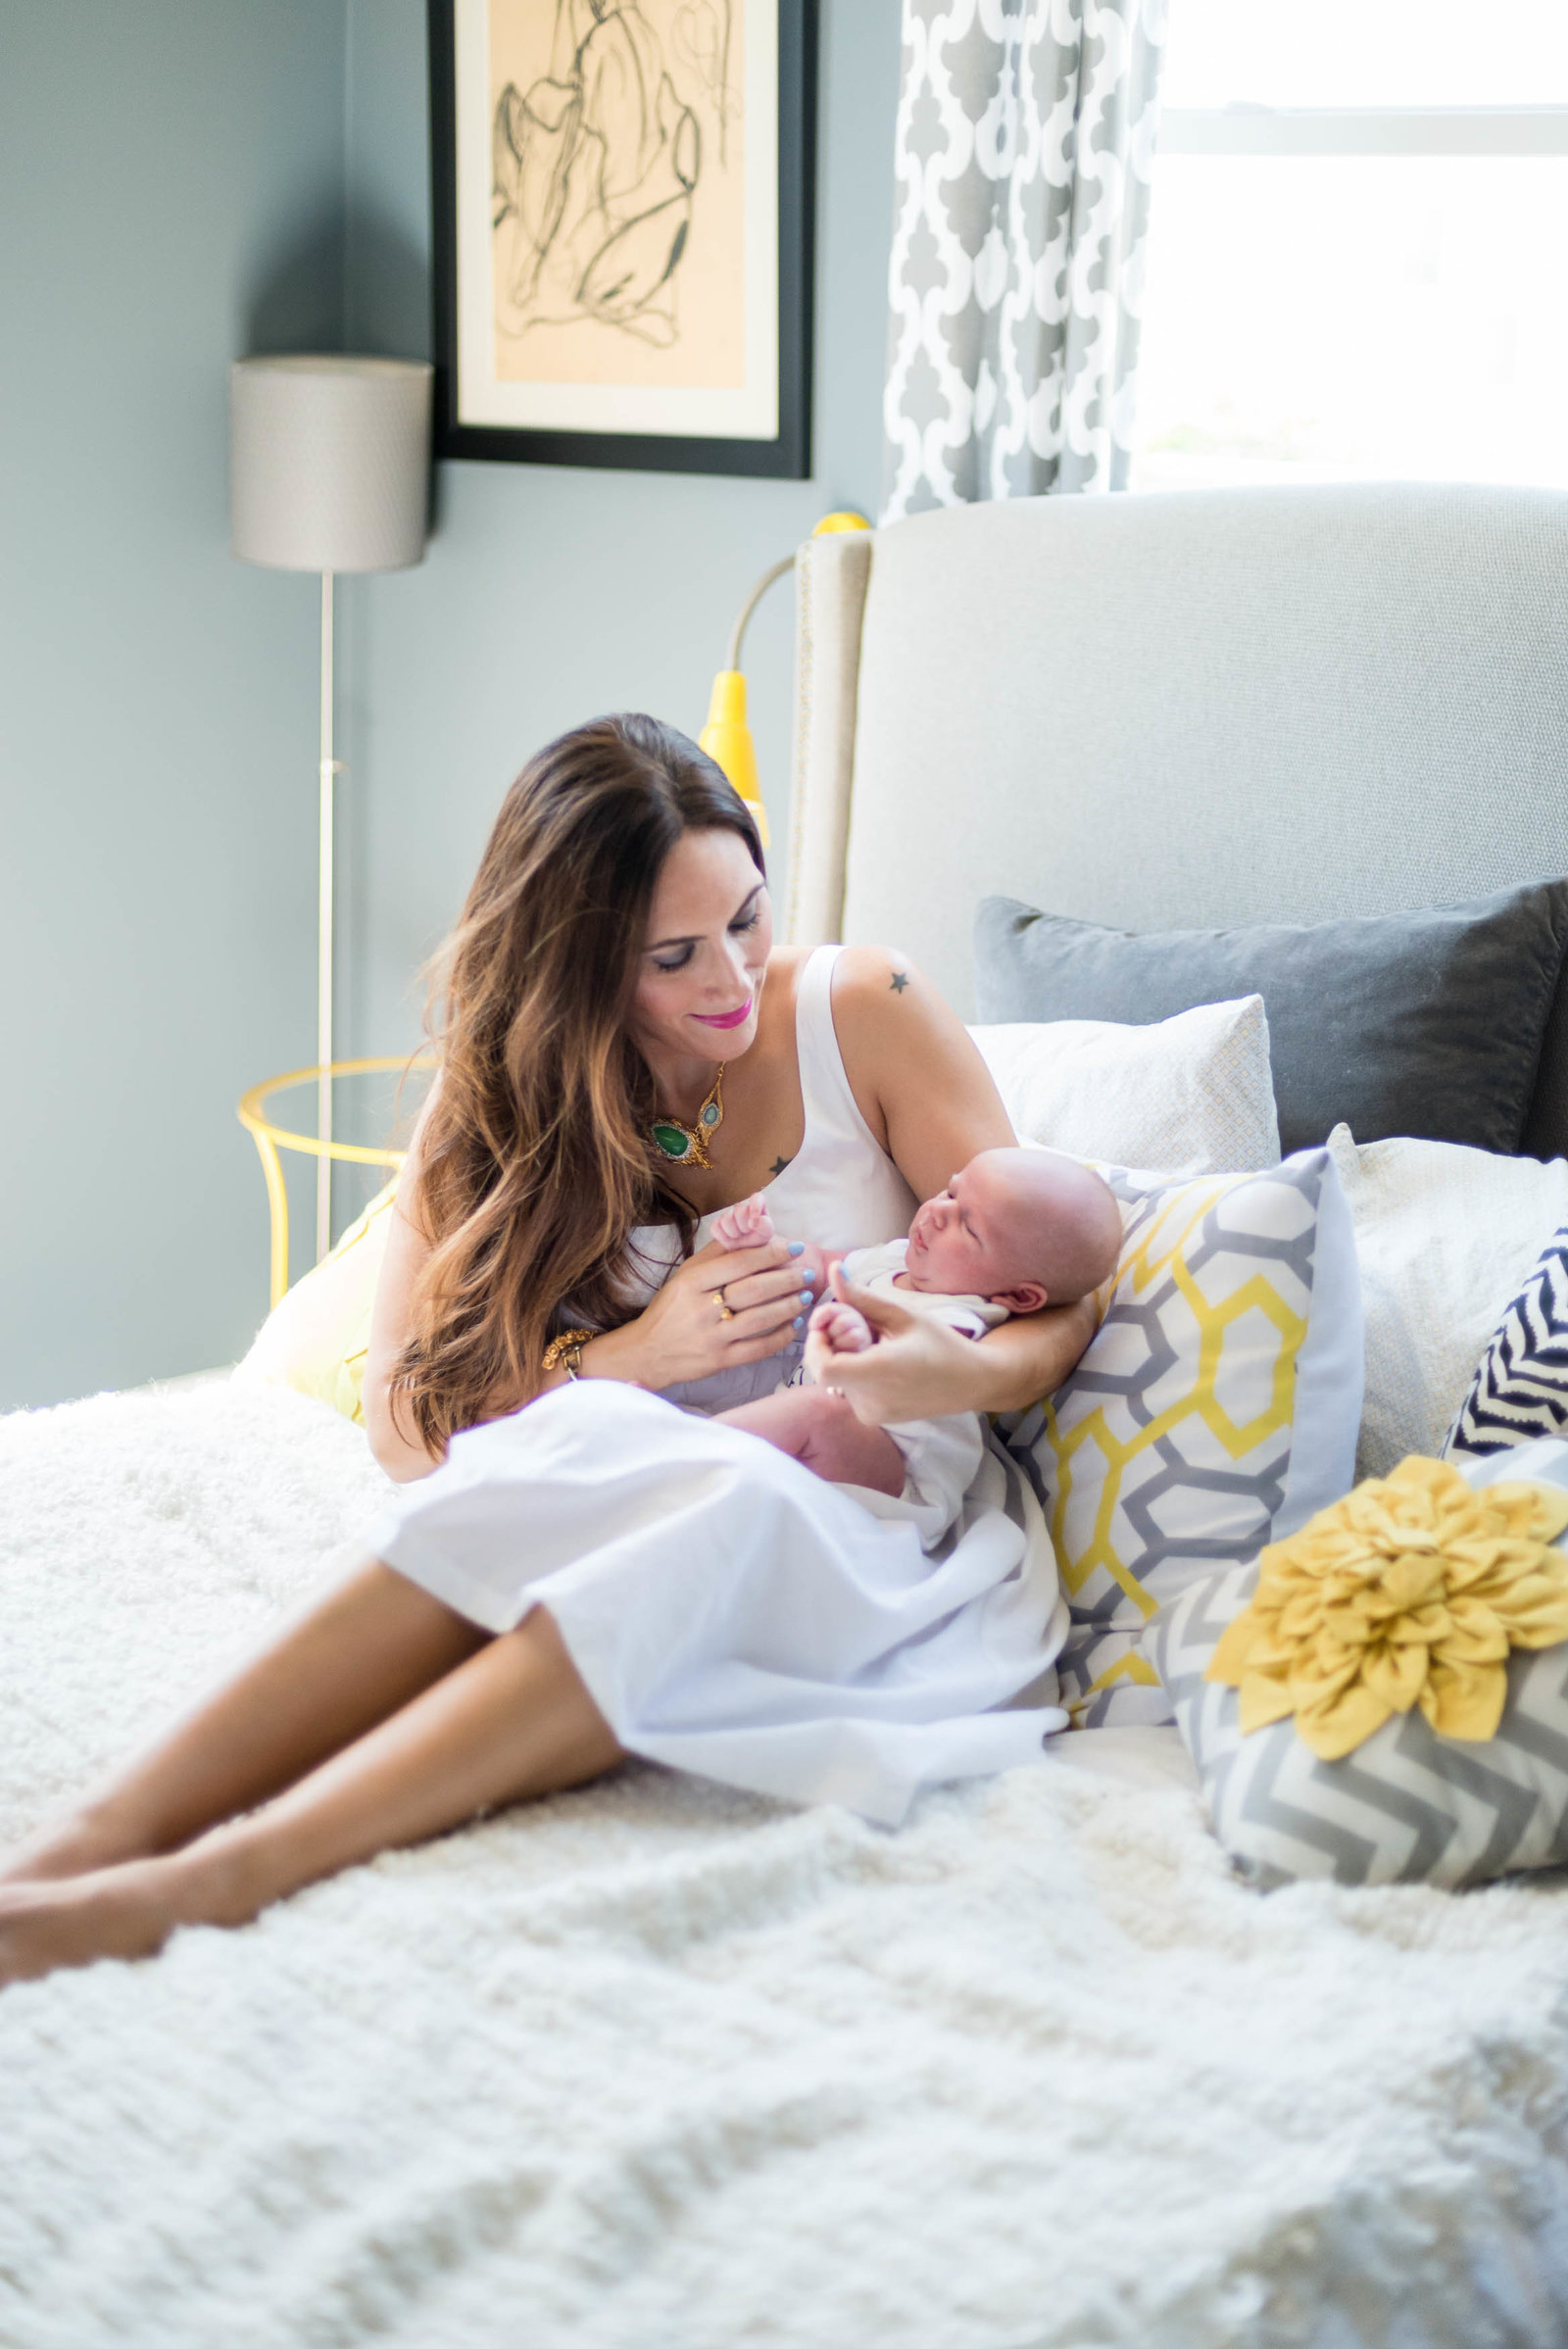 Boston-Newborn-Photographer-Lifestyle-Documentary-Home-Styled-Session-65